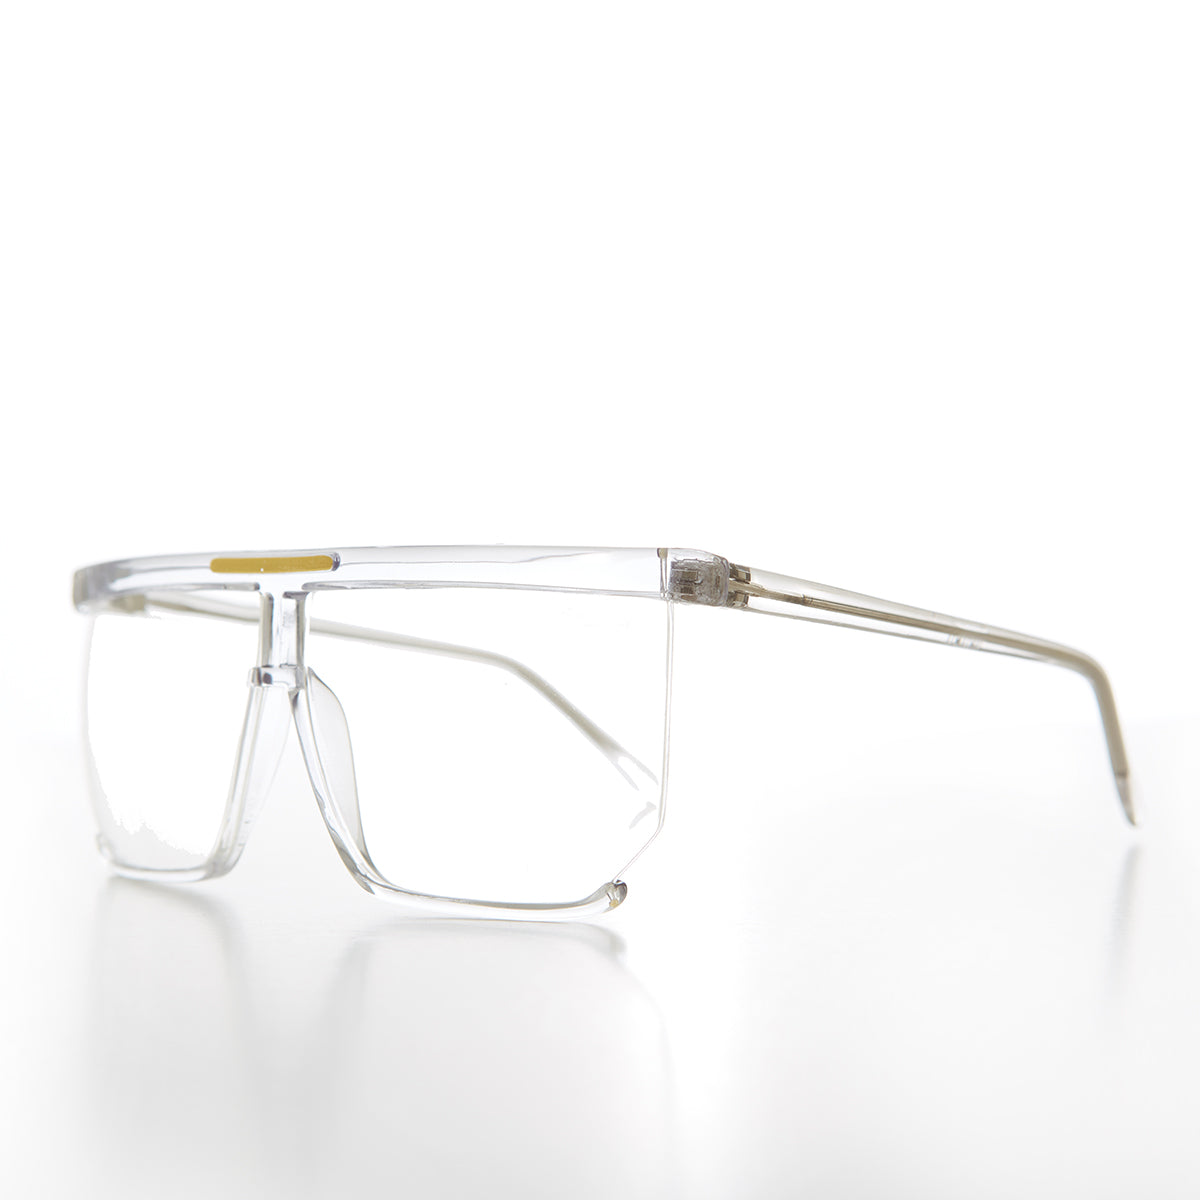 Flat Top Protective Safety Eyeglasses - Plot